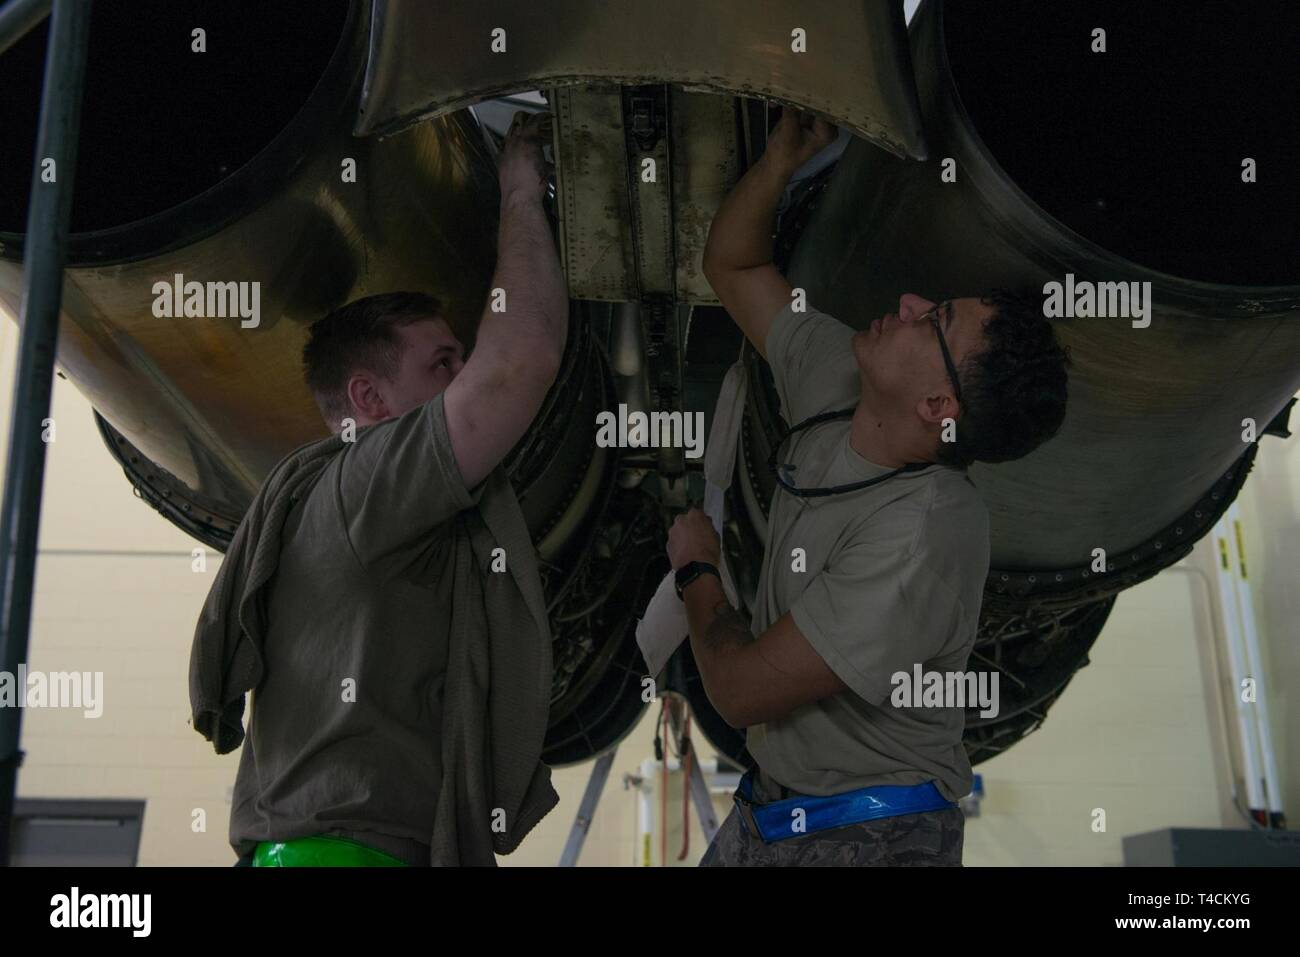 From left, Staff Sgt. Shane Vandevelde and Senior Airman Pfeenix Tramill, 5th Maintenance Squadron crew chiefs, adjust fasteners on a B-52H Stratofortress engine at Minot Air Force Base, North Dakota, March 19, 2019. During a Phase Inspection, a B-52 is stripped down to its basic body frame. - Stock Image